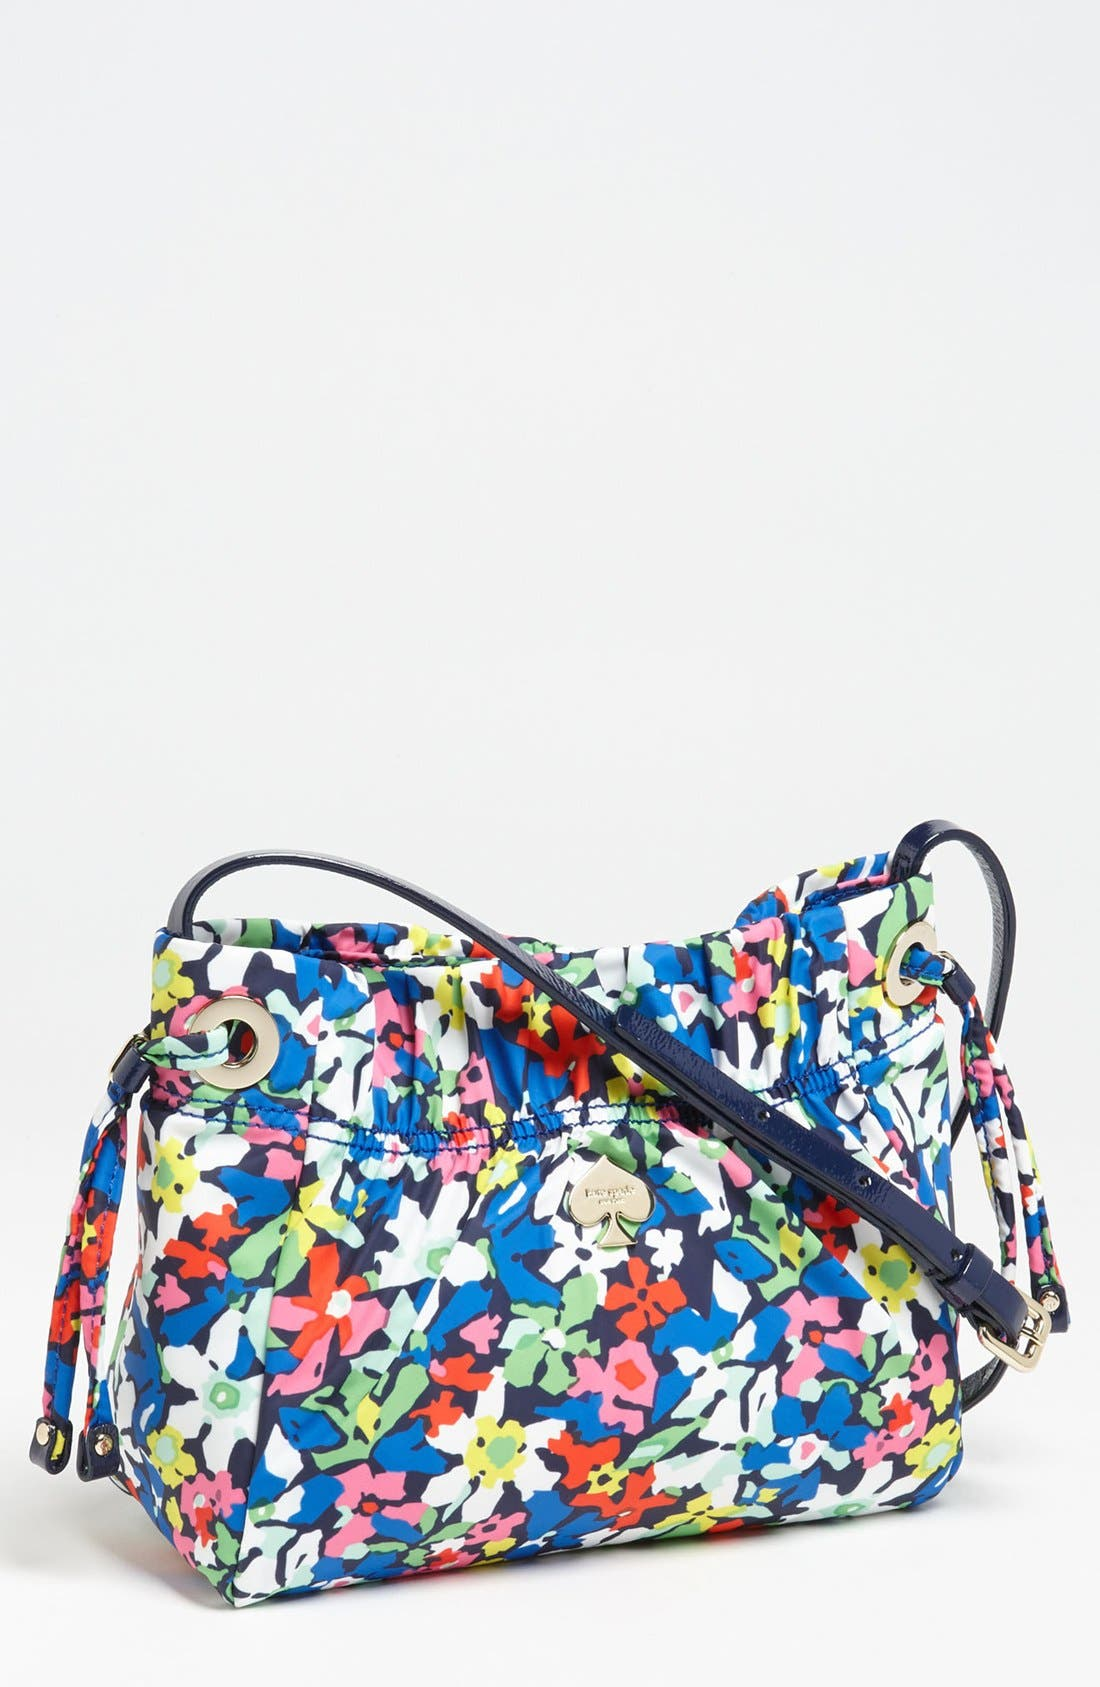 Alternate Image 1 Selected - kate spade new york 'carroll gardens - bryan' crossbody bag